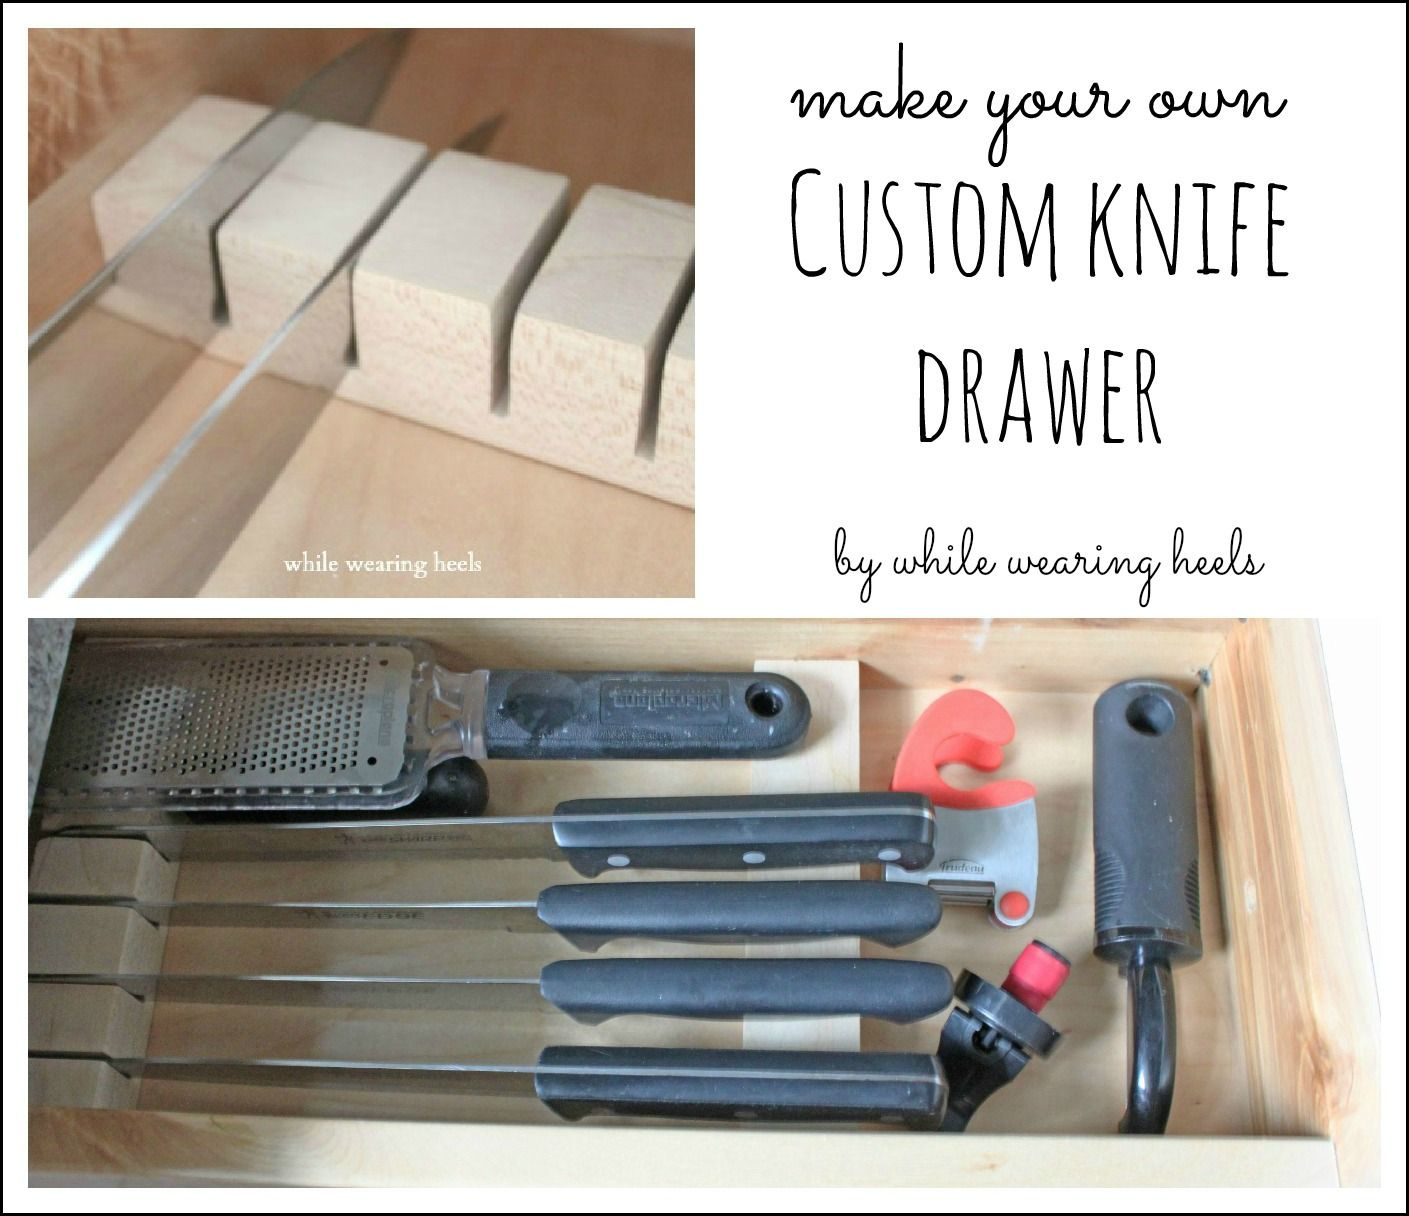 I Used To Store My Knives In A Knife Block On My Kitchen Counter